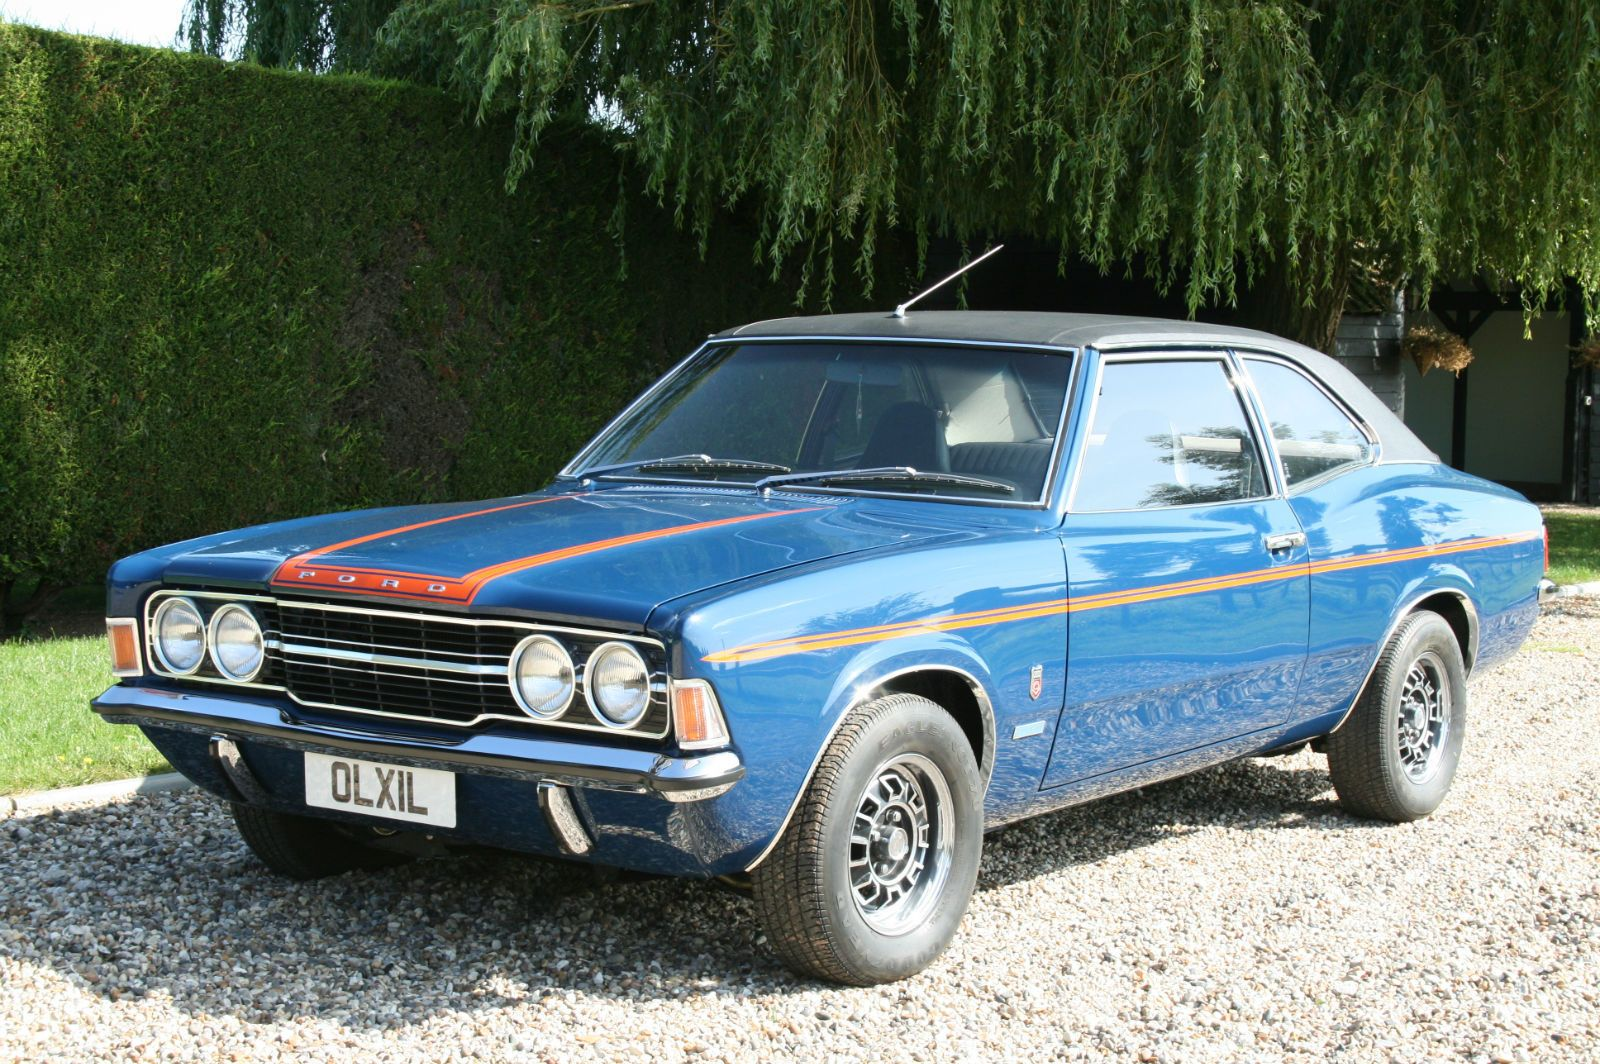 Ford Cortina Superspeed V6 3 1 Concours Restored The Only Original Mk3 Left Ebay Ford Classic Cars Classic Cars Ford